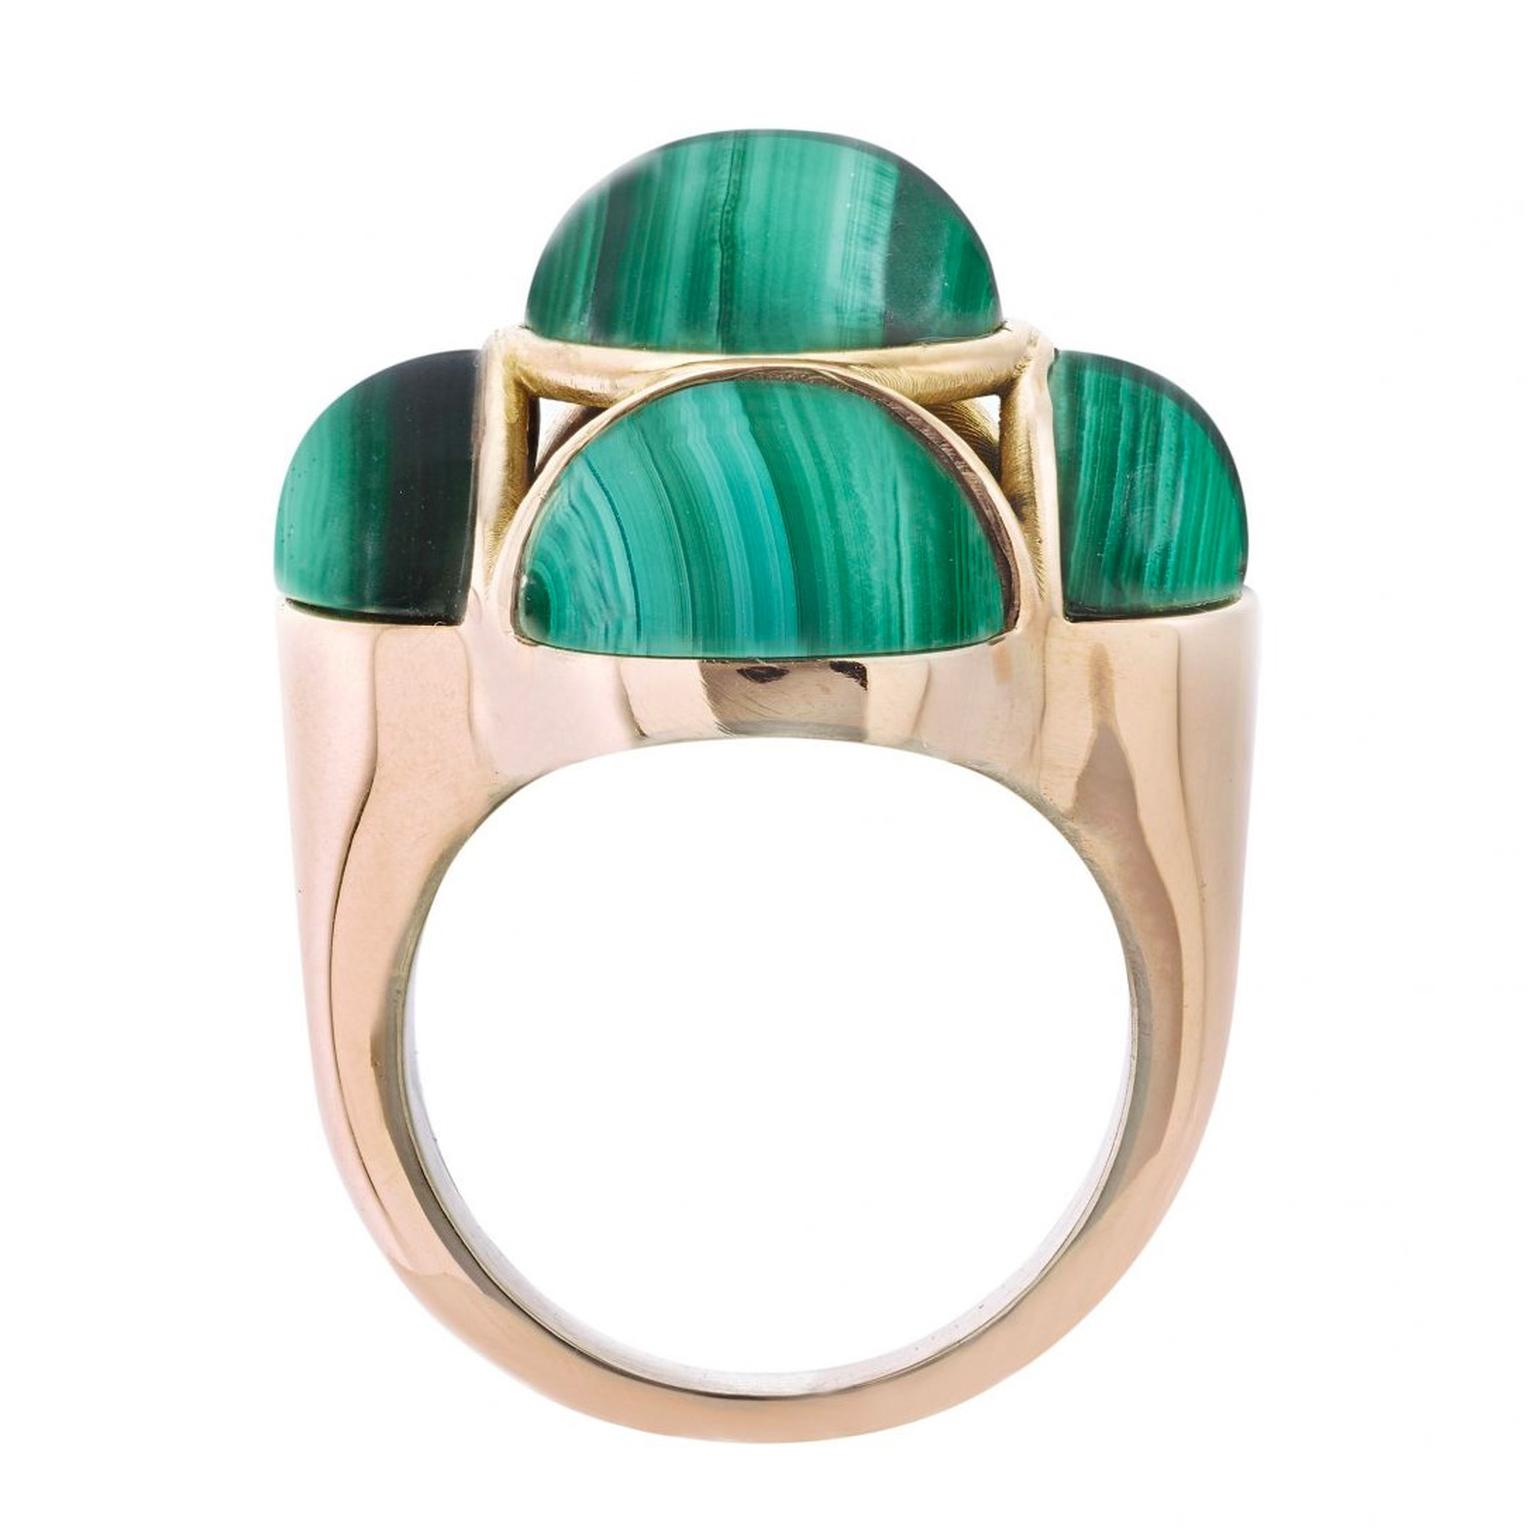 Garaude Byzantium malachite cocktail ring